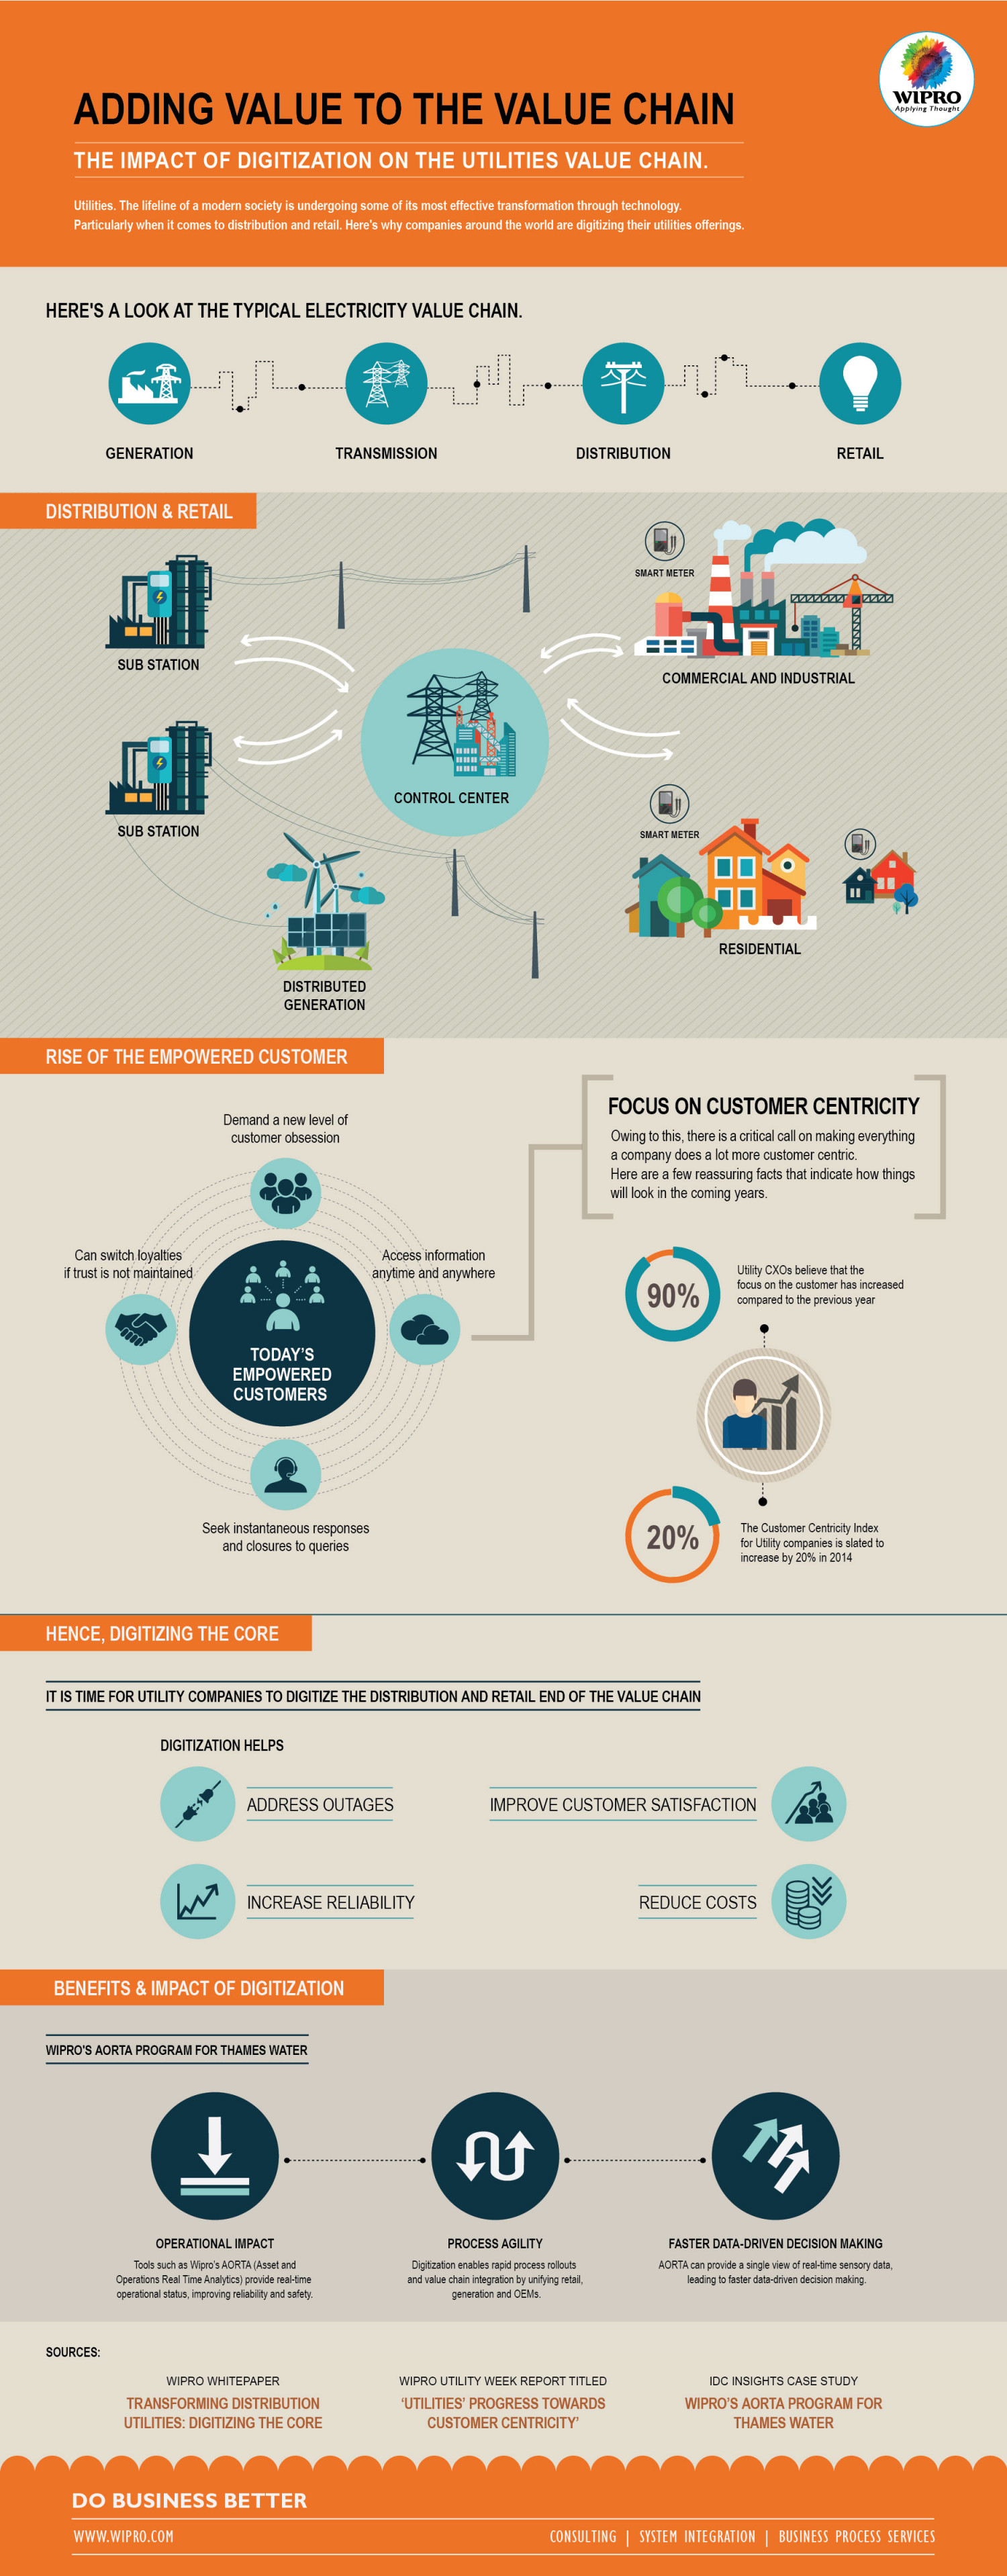 Impact of Digitization on Utilities Value Chain Infographic